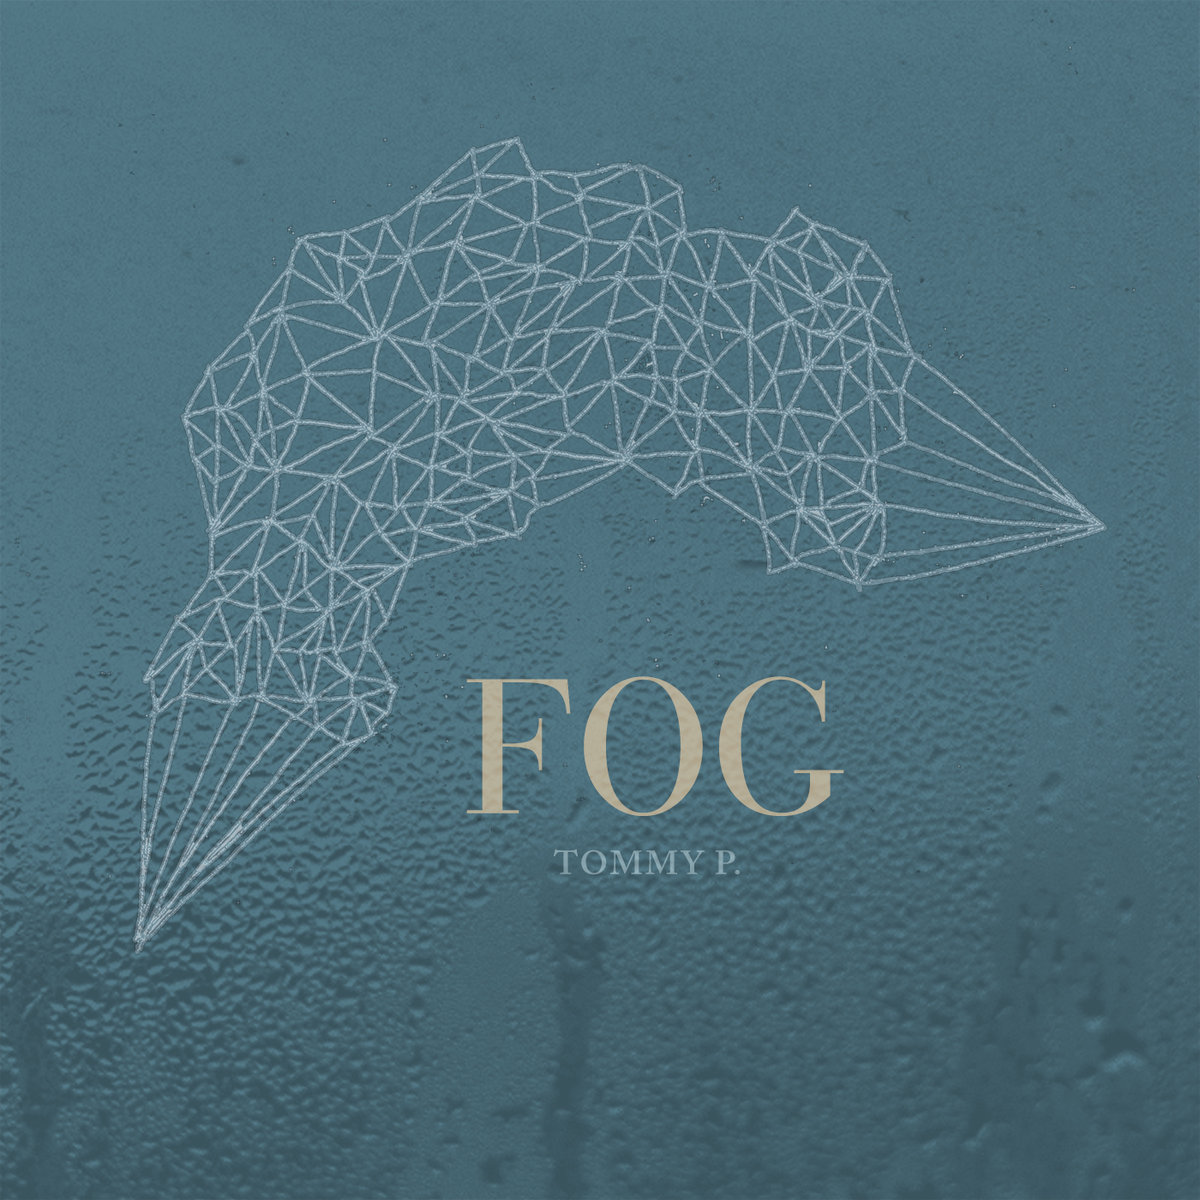 Tommy P. - Thursday Morning Rain @ 'Fog' album (11th ave records, 11thaverecords 11th avenue)